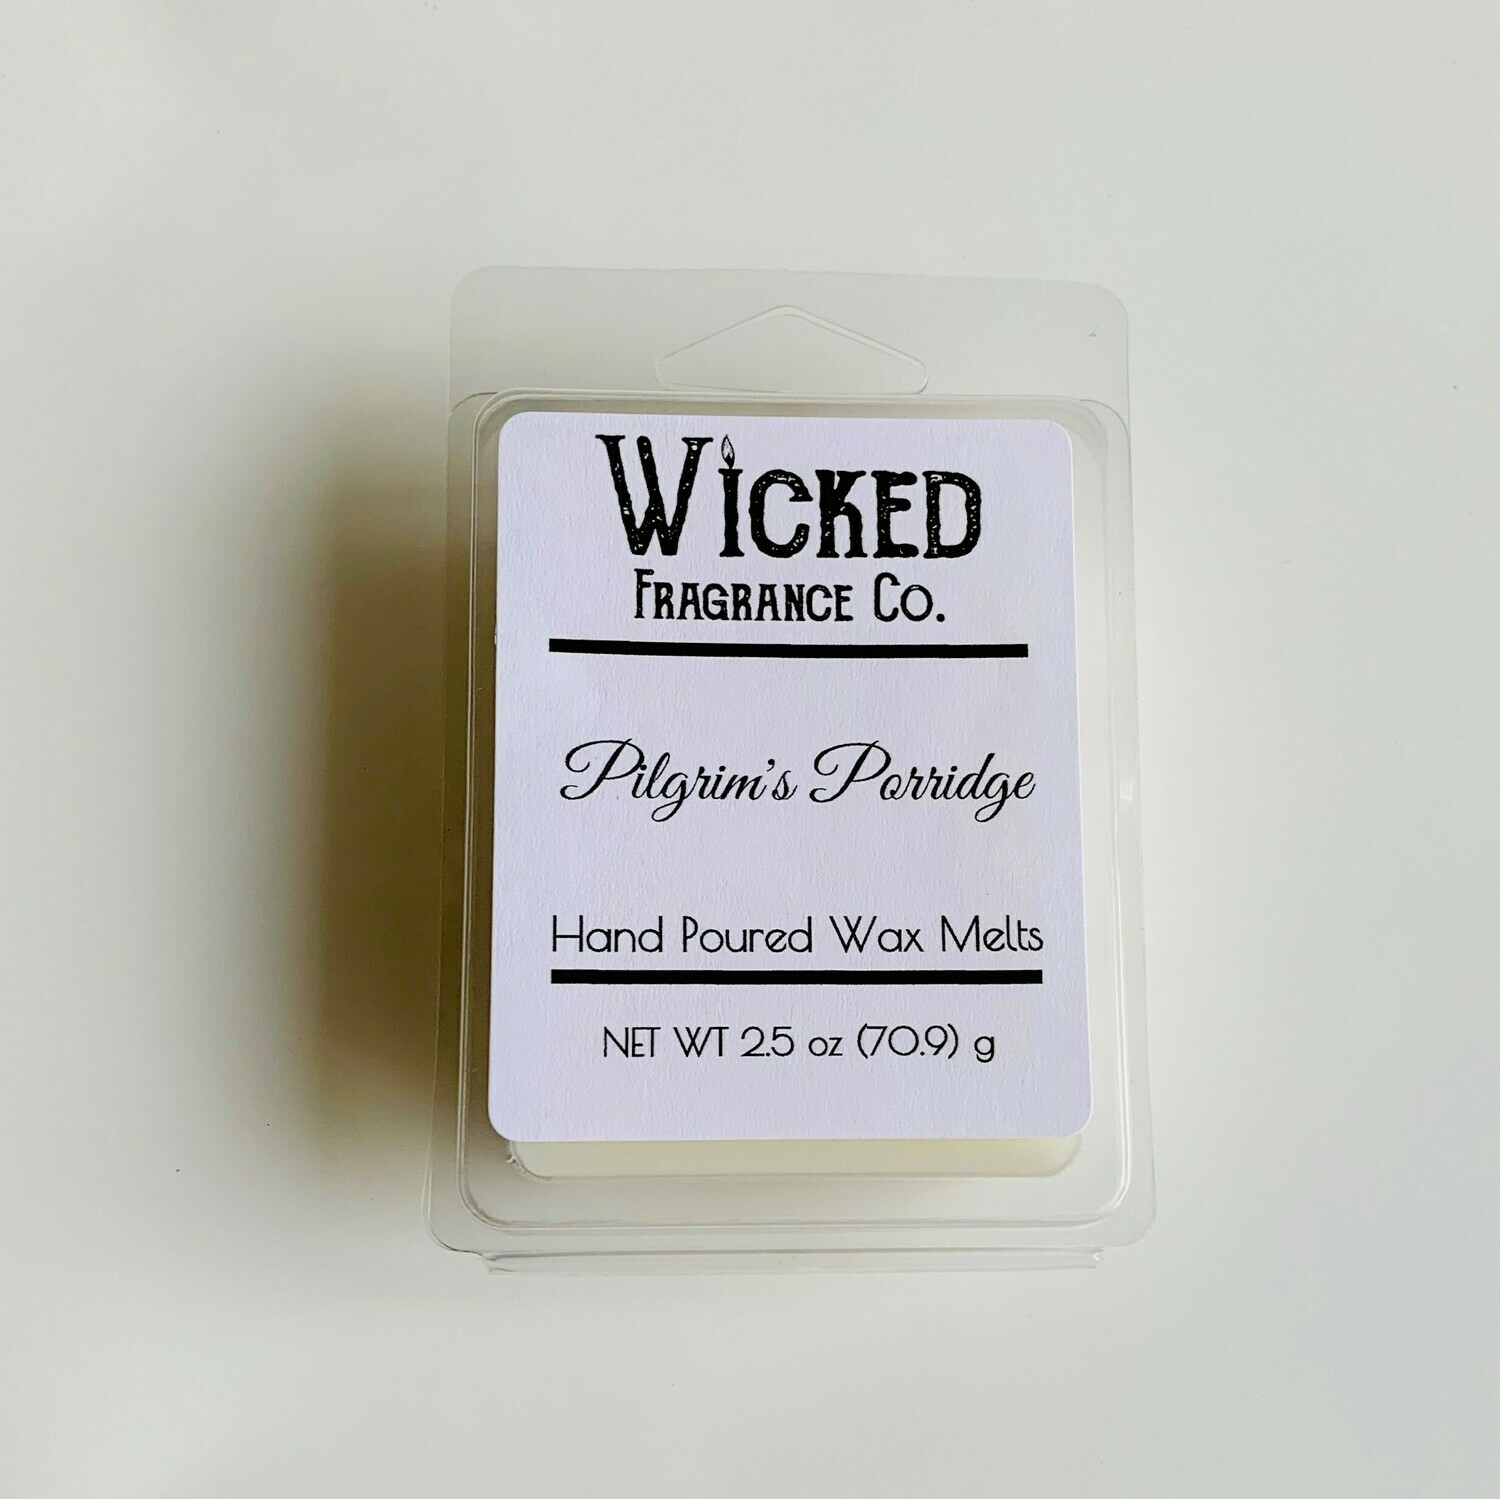 Pilgrim's Porridge Wax Melts